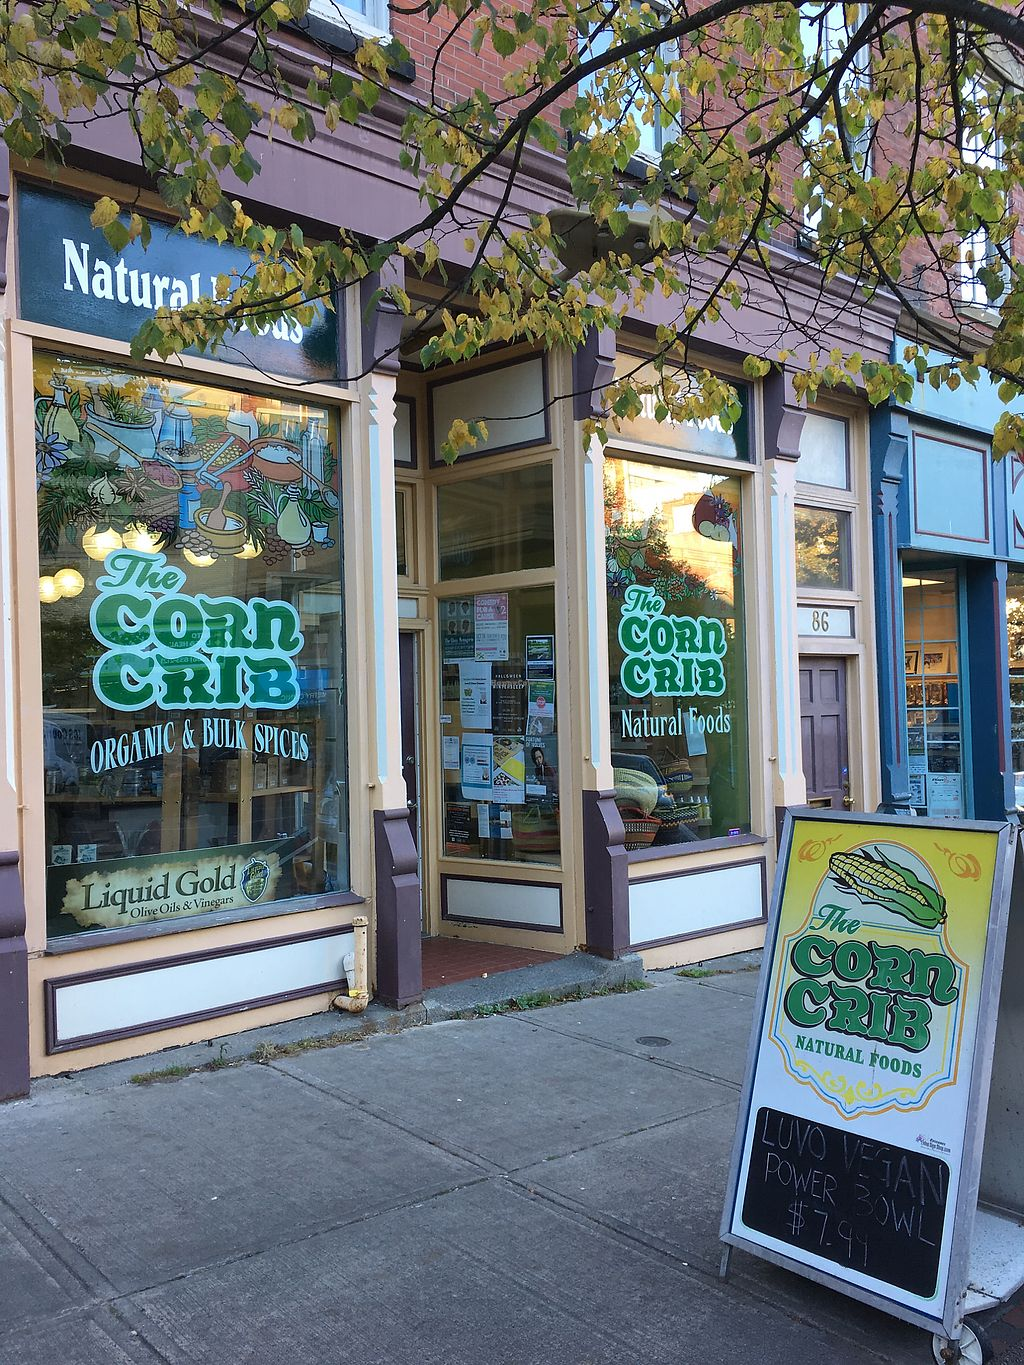 """Photo of Corn Crib Natural Foods  by <a href=""""/members/profile/Scholemillers"""">Scholemillers</a> <br/>New location <br/> October 12, 2017  - <a href='/contact/abuse/image/45339/314471'>Report</a>"""